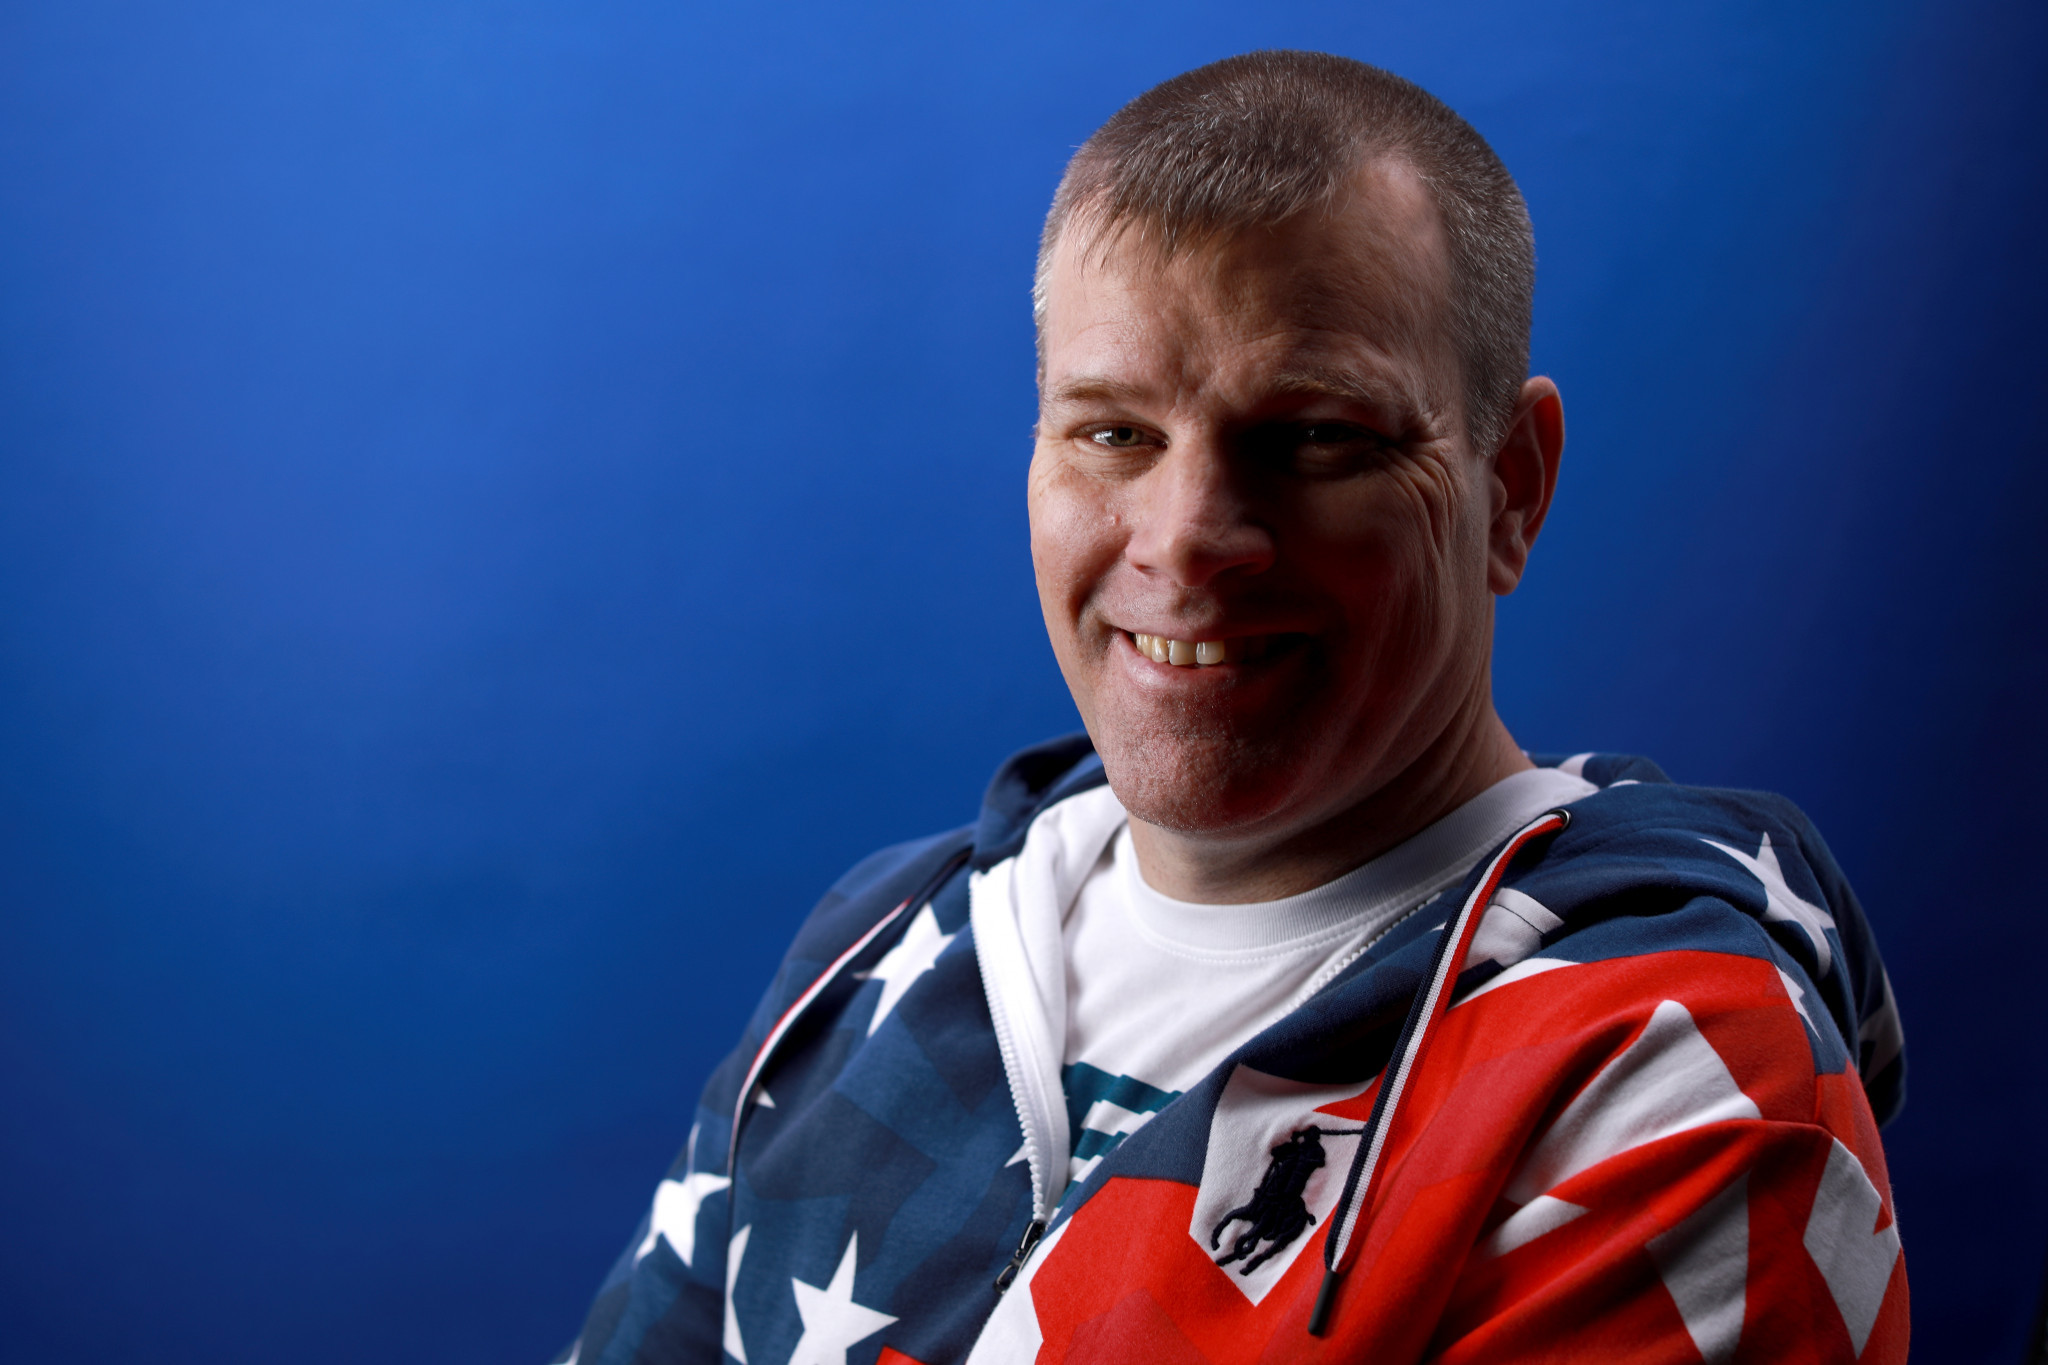 Kirk Black is a member of the US wheelchair curling team for Pyeongchang 2018 ©Getty Images